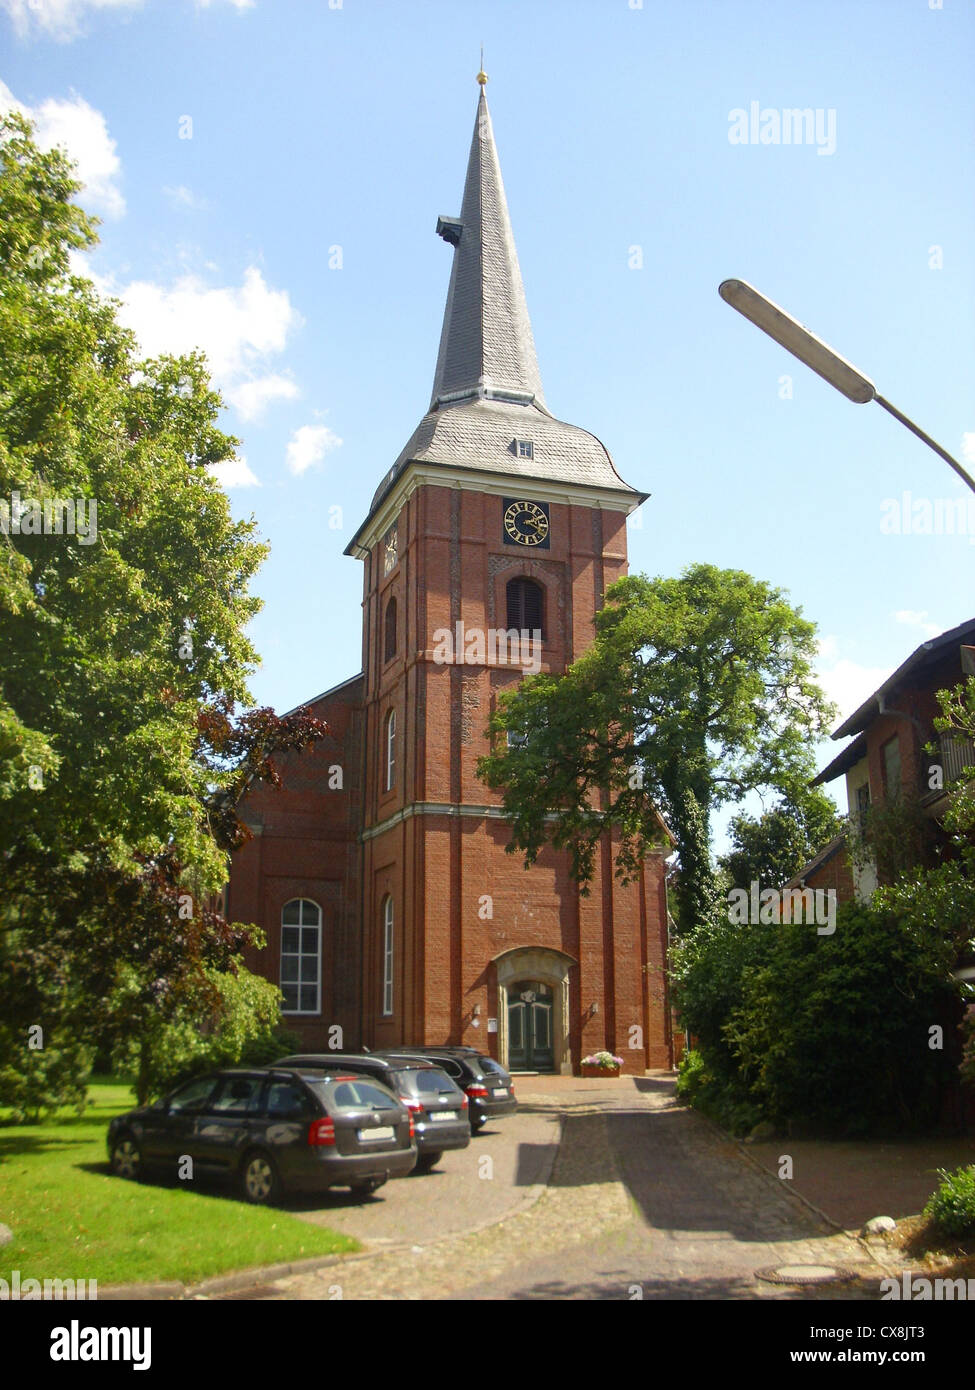 The St. Peter Church in Osten, district of Cuxhaven, Lower Saxony, Germany - Stock Image